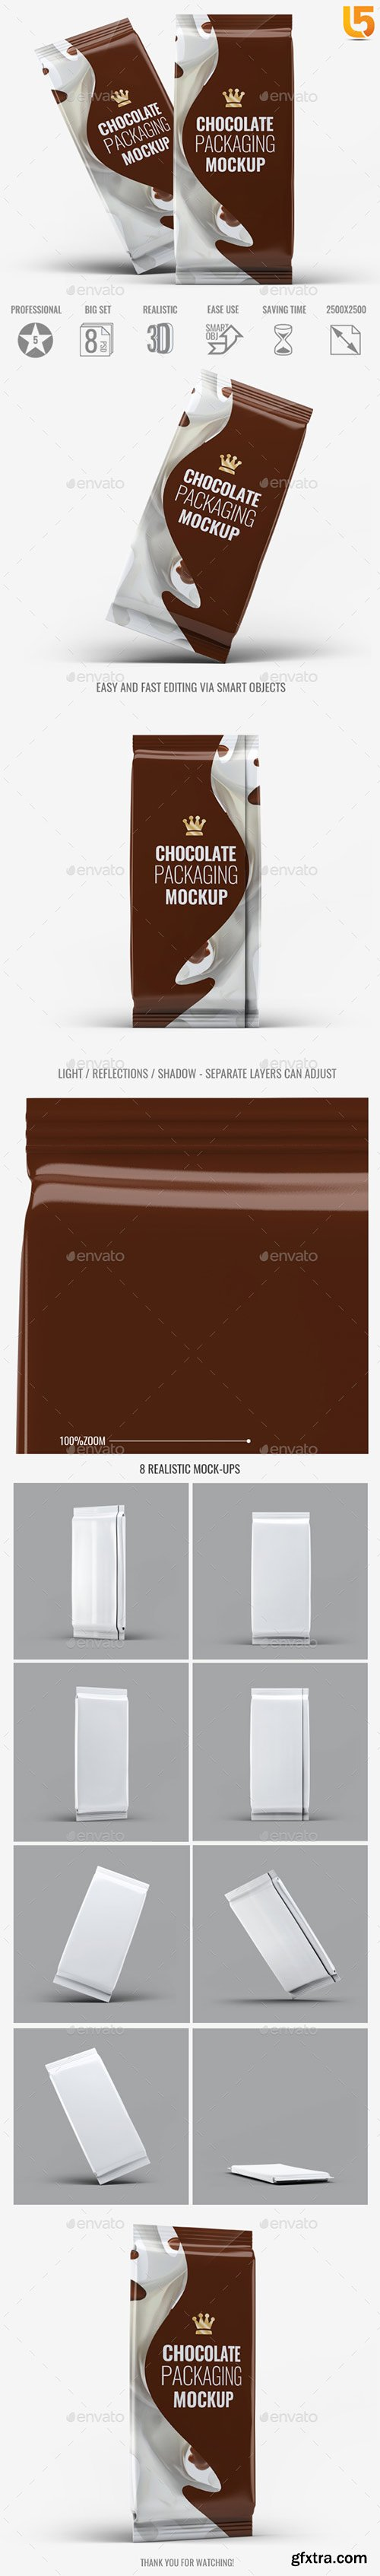 Graphicriver - Chocolate Packaging Mock-Up 20413023